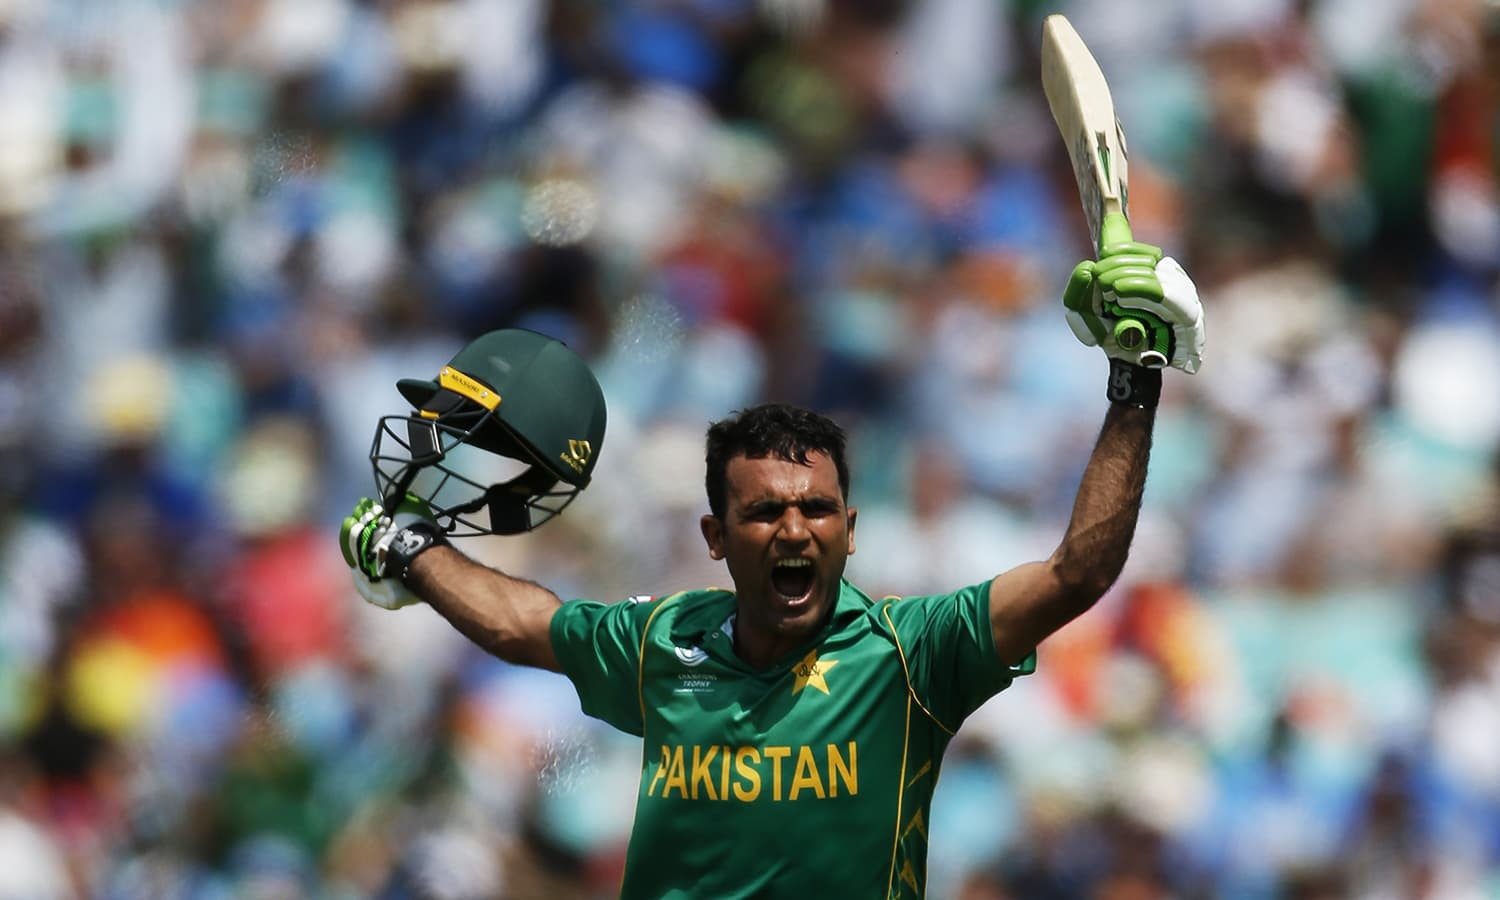 Fakhar Zaman celebrates his century, going on to score 114 runs before being caught out on a Hardik Pandya ball. — Reuters